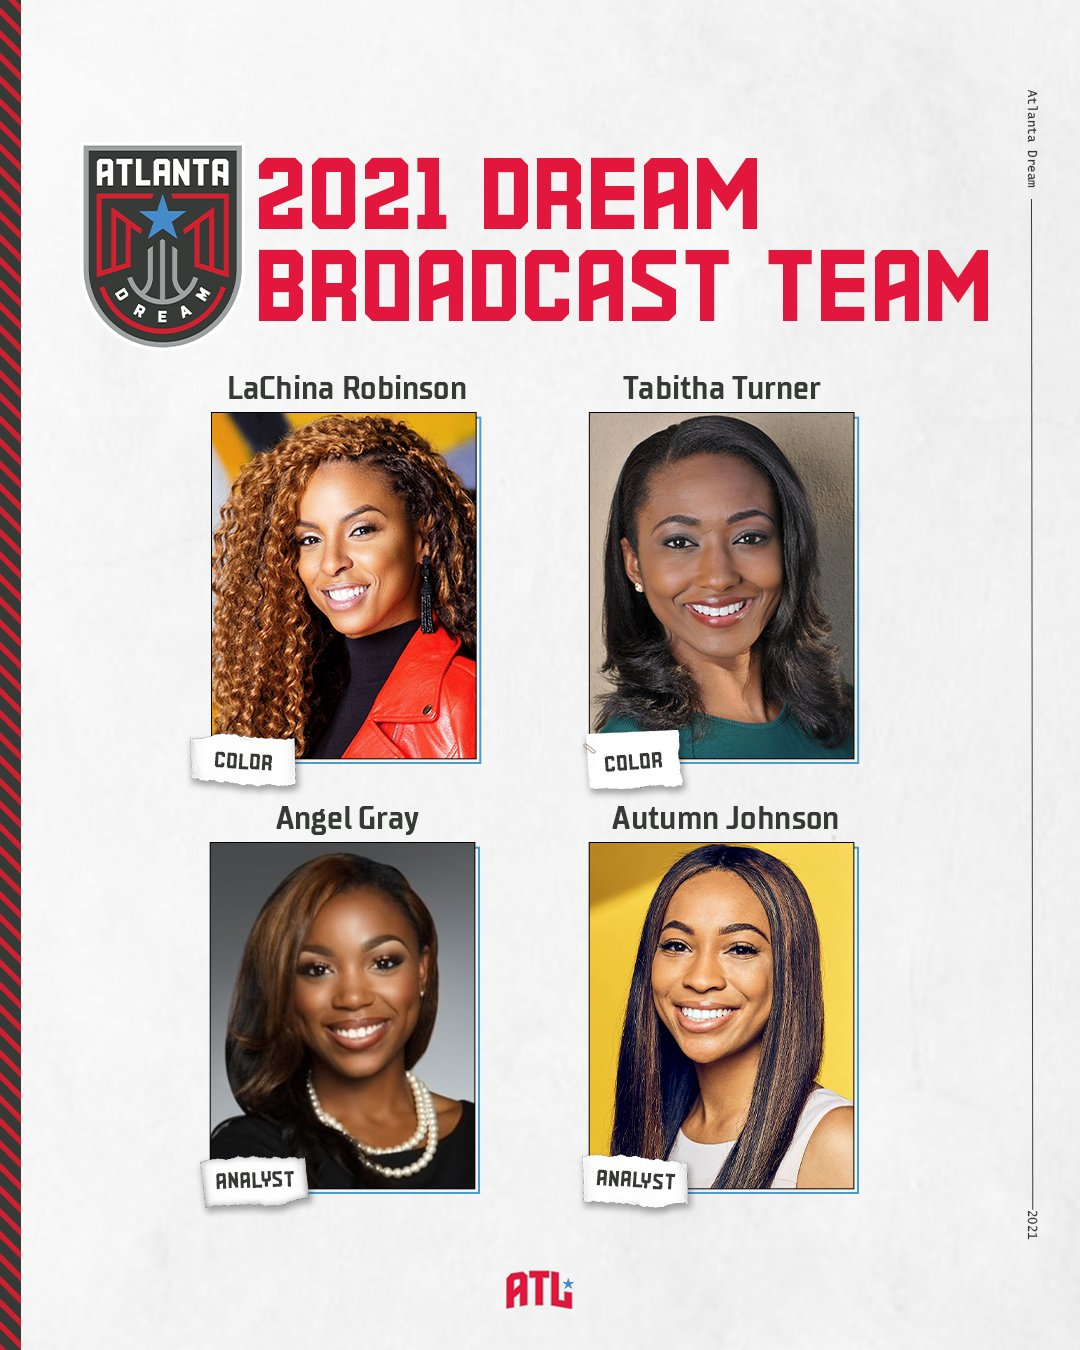 SOURCE SPORTS: WNBA's Atlanta Dream To Have All Black Female Broadcast Team During Home Games This Season